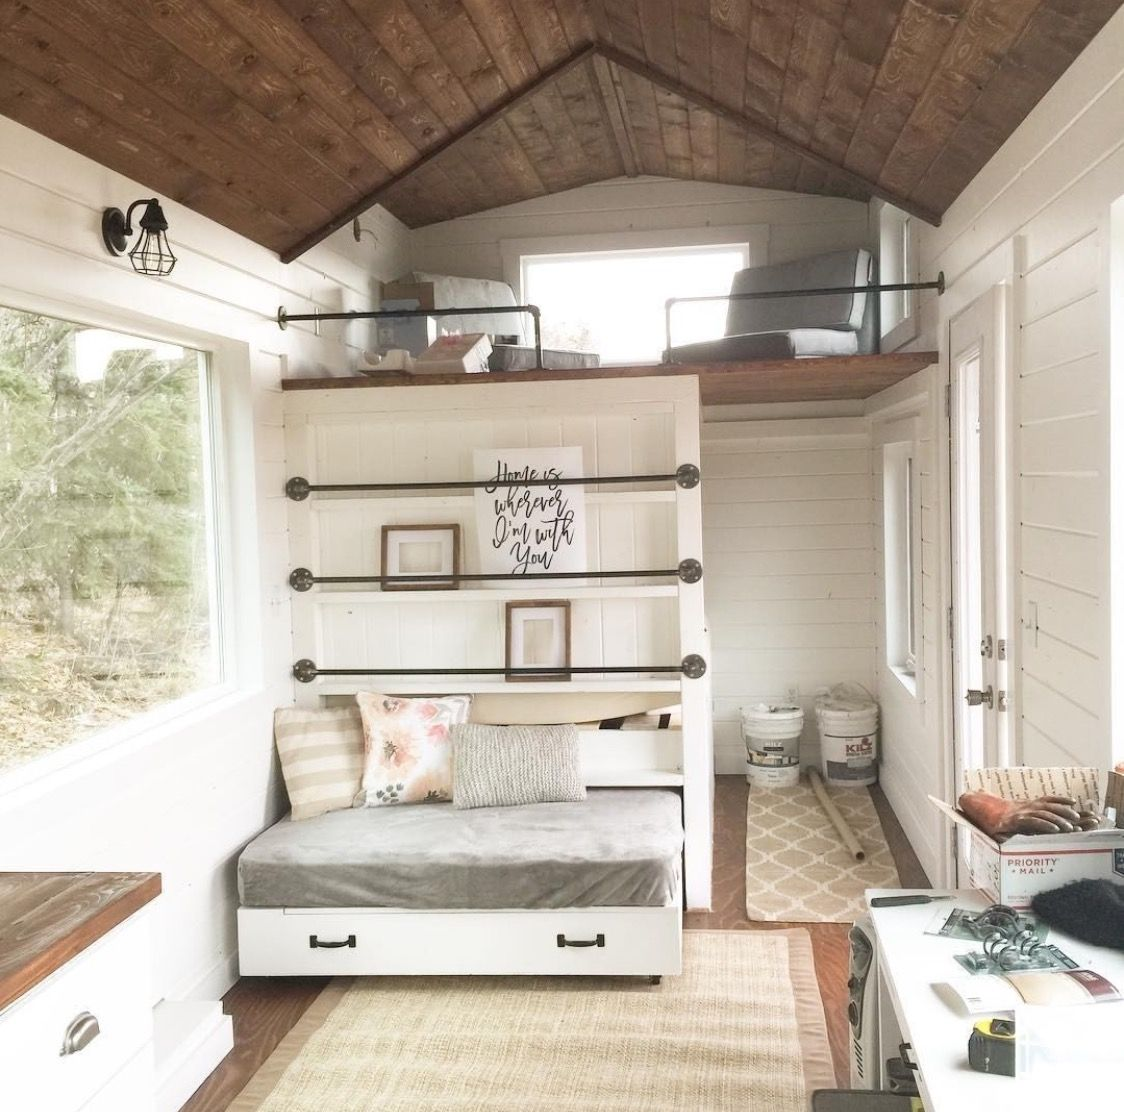 3 bedroom loft house  Pin by OwnitOklahoma on A different take on homes  Pinterest